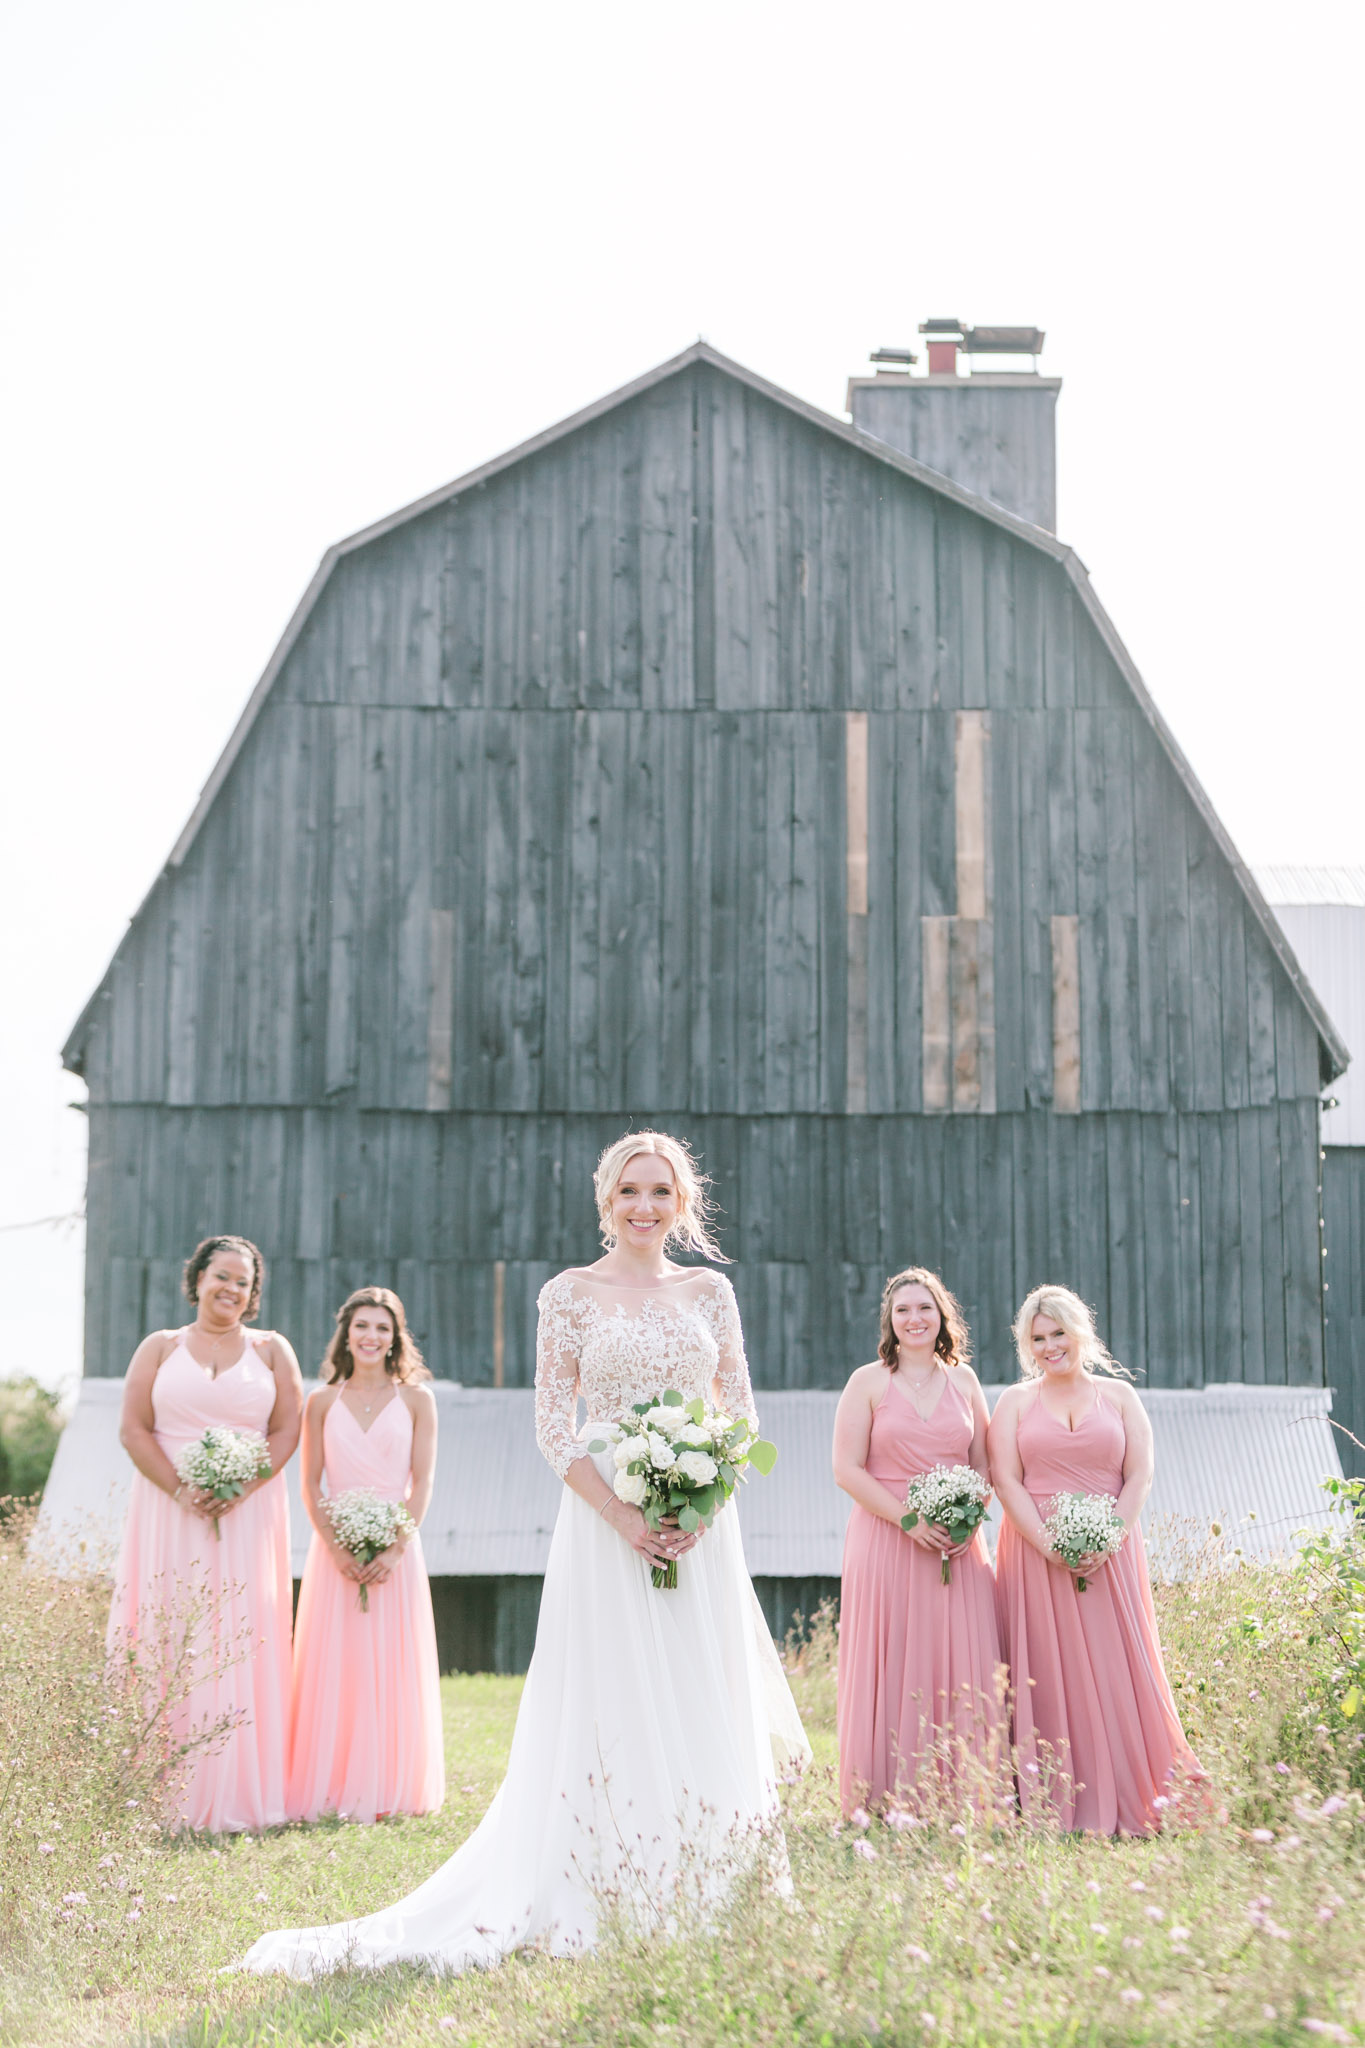 The Barn Weddings-6287.JPG